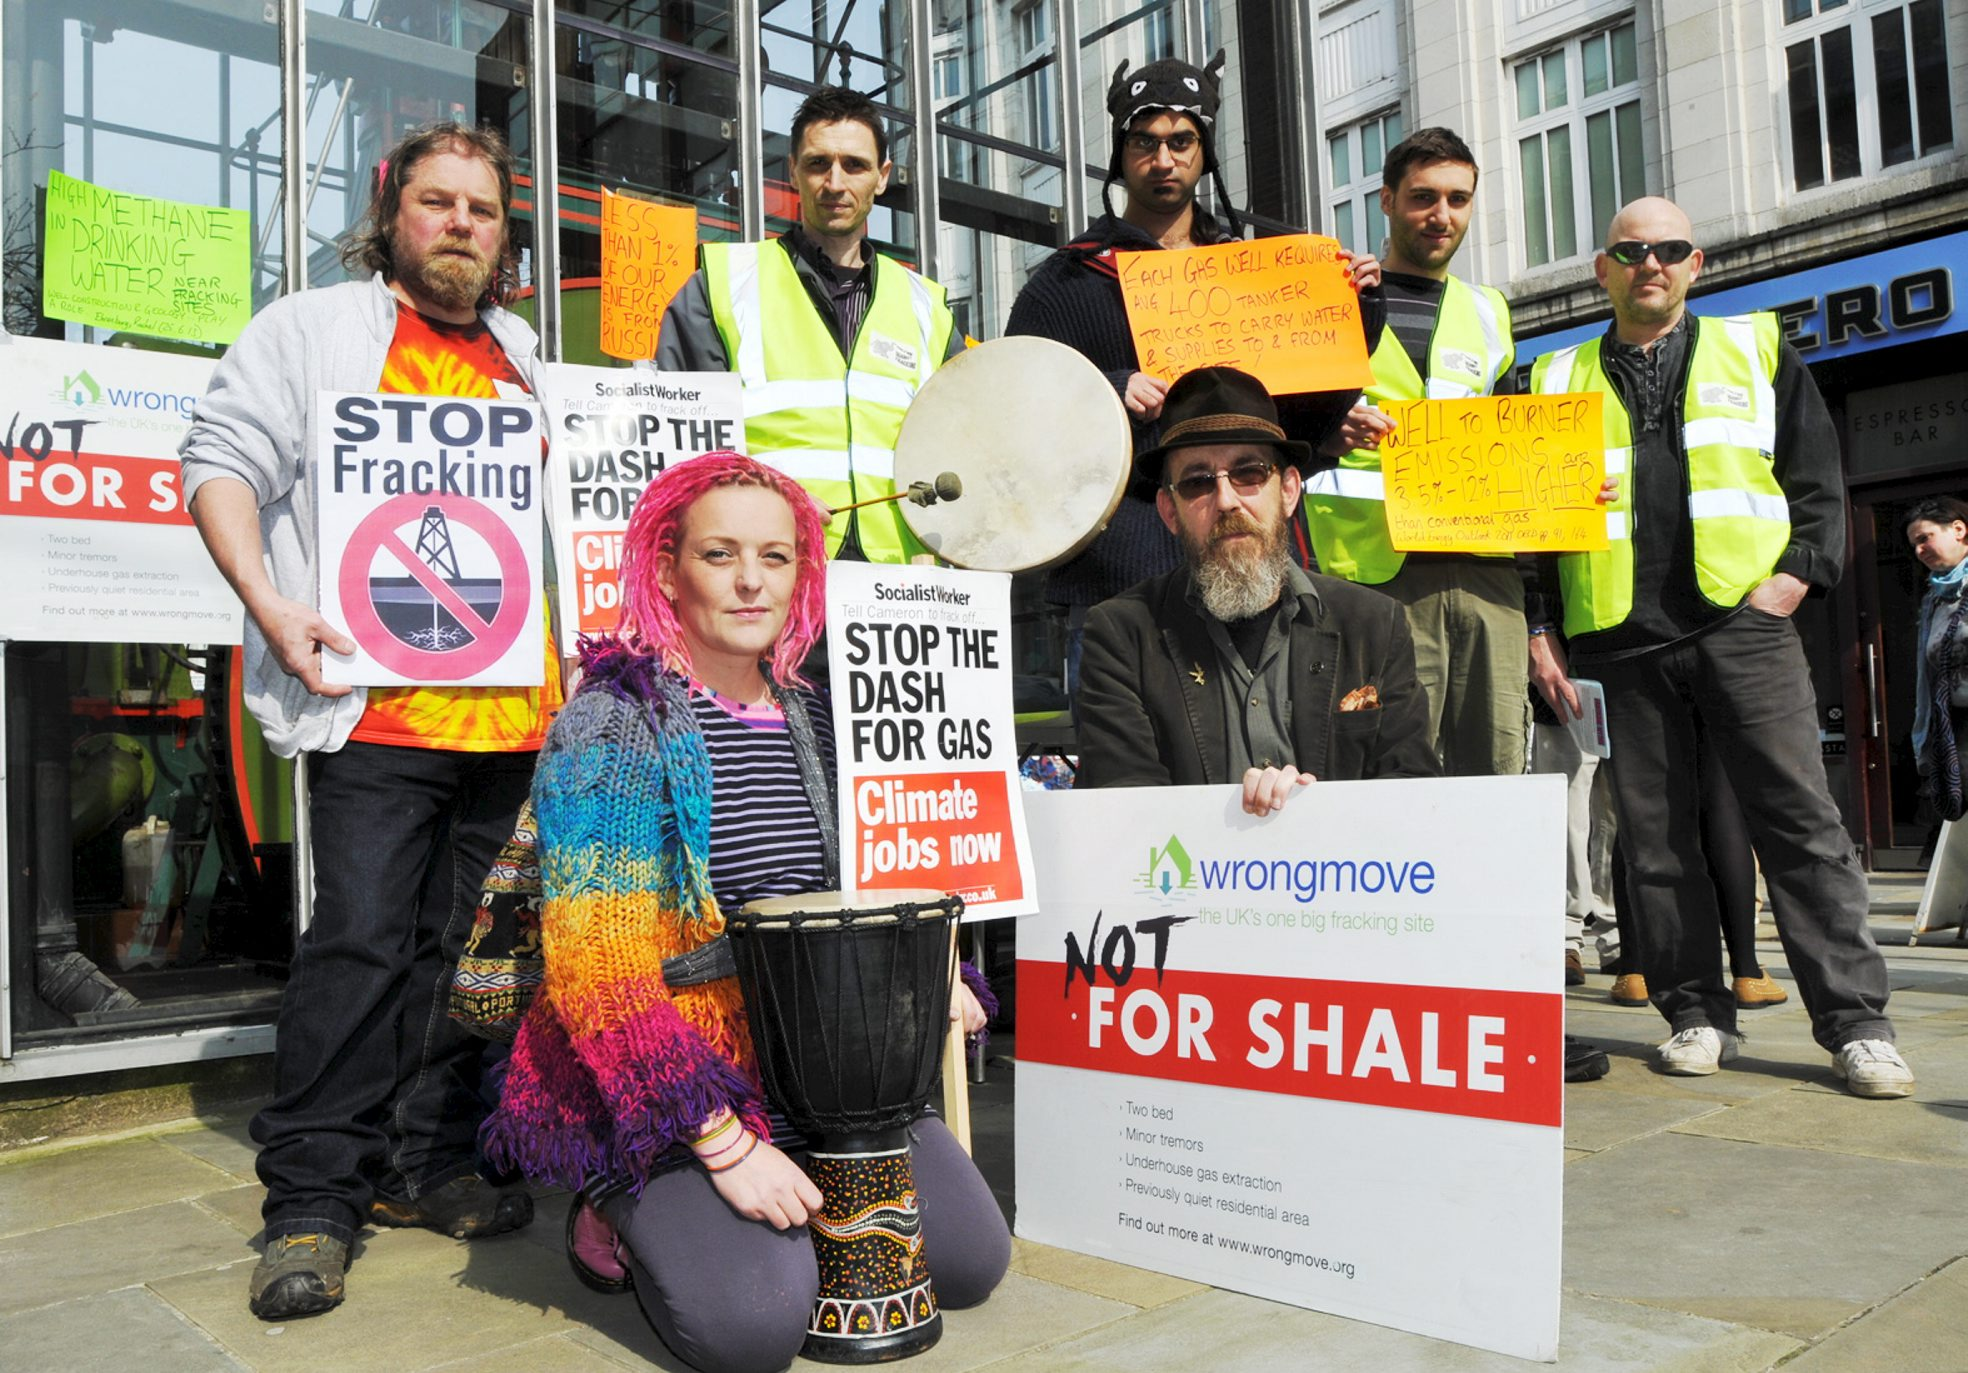 Anti-fracking protesters demonstrate in Bolton town centre